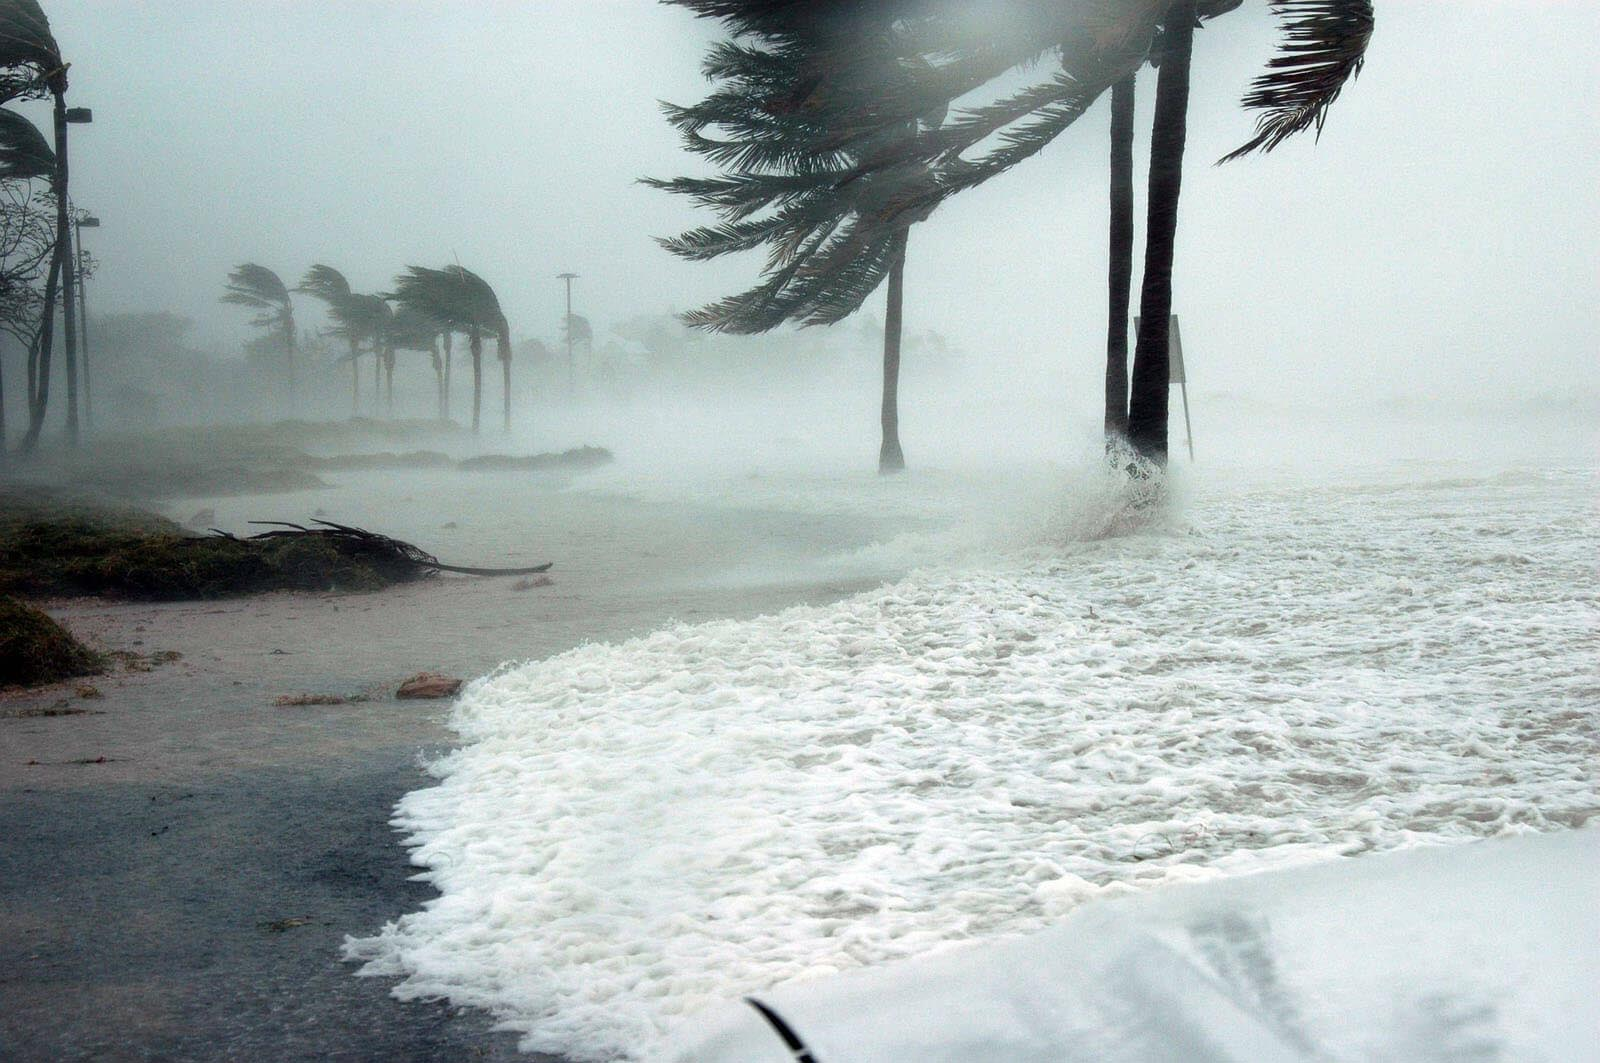 How will the Hurricanes impact the Economy?